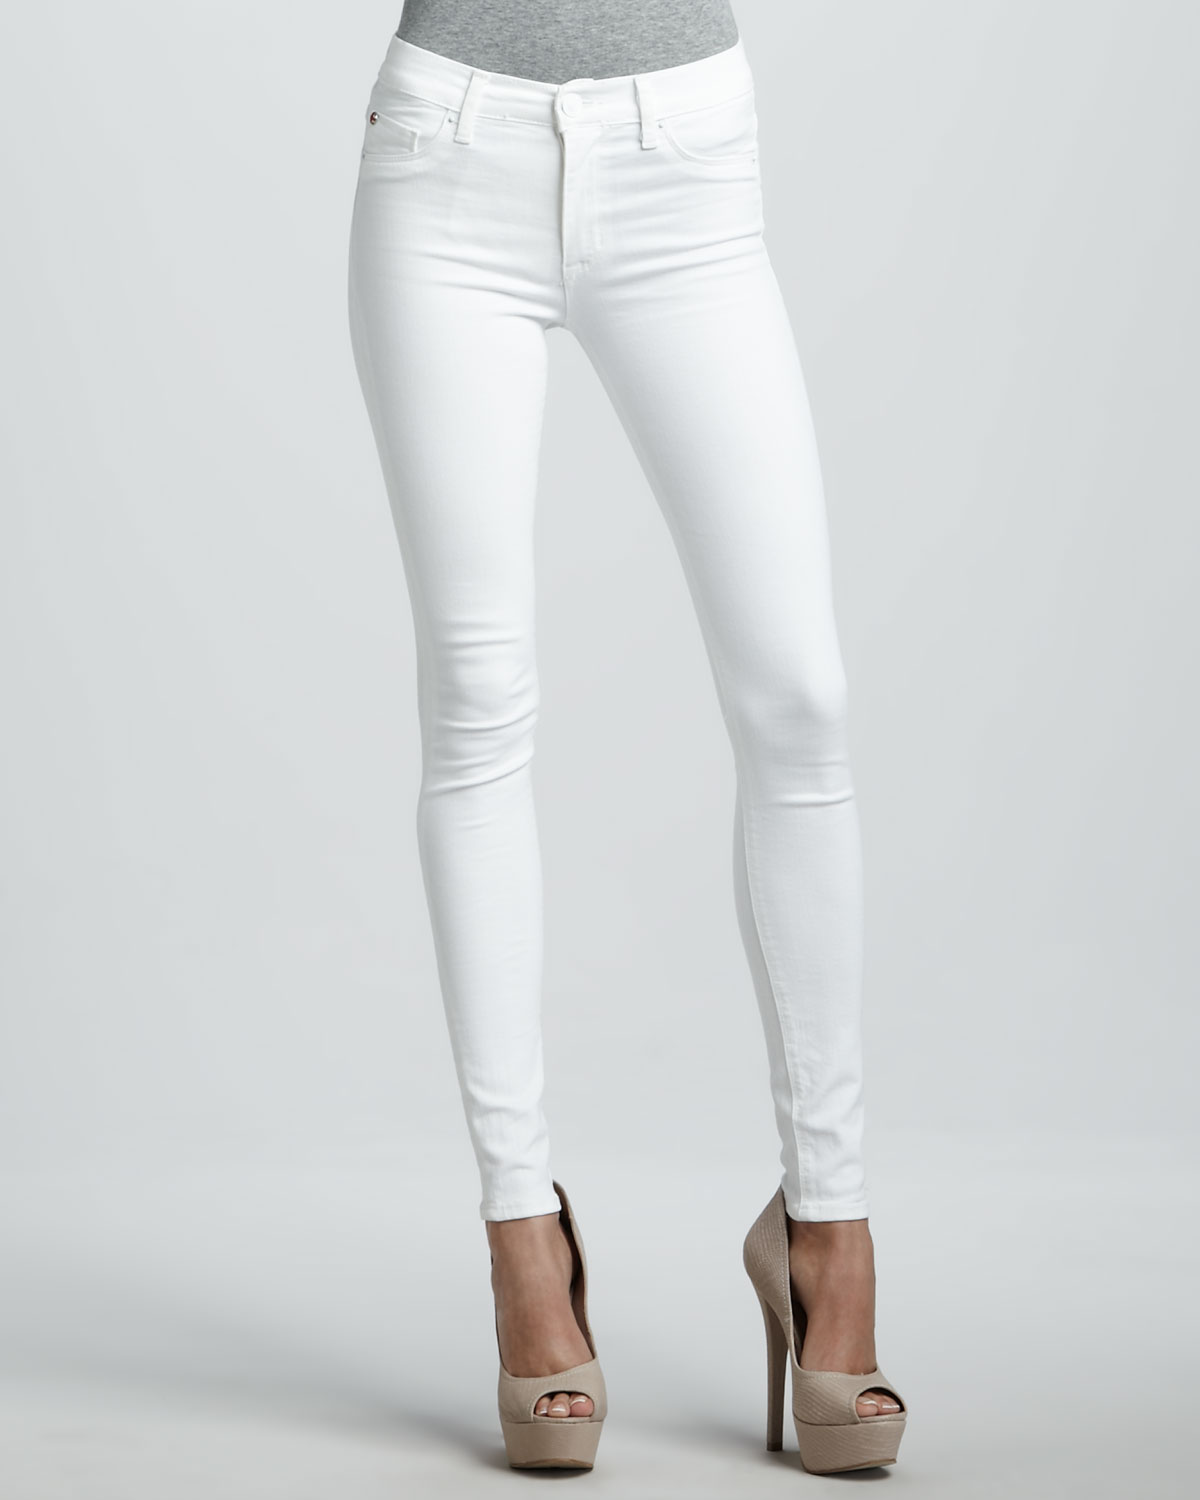 You can pair a clean white women's tops or blazer with a dark wash for a modern look. If you're looking for a fun pair to wear out, try out some boot cut jeans or flares. If you're looking for a fun pair to wear out, try out some boot cut jeans or flares.